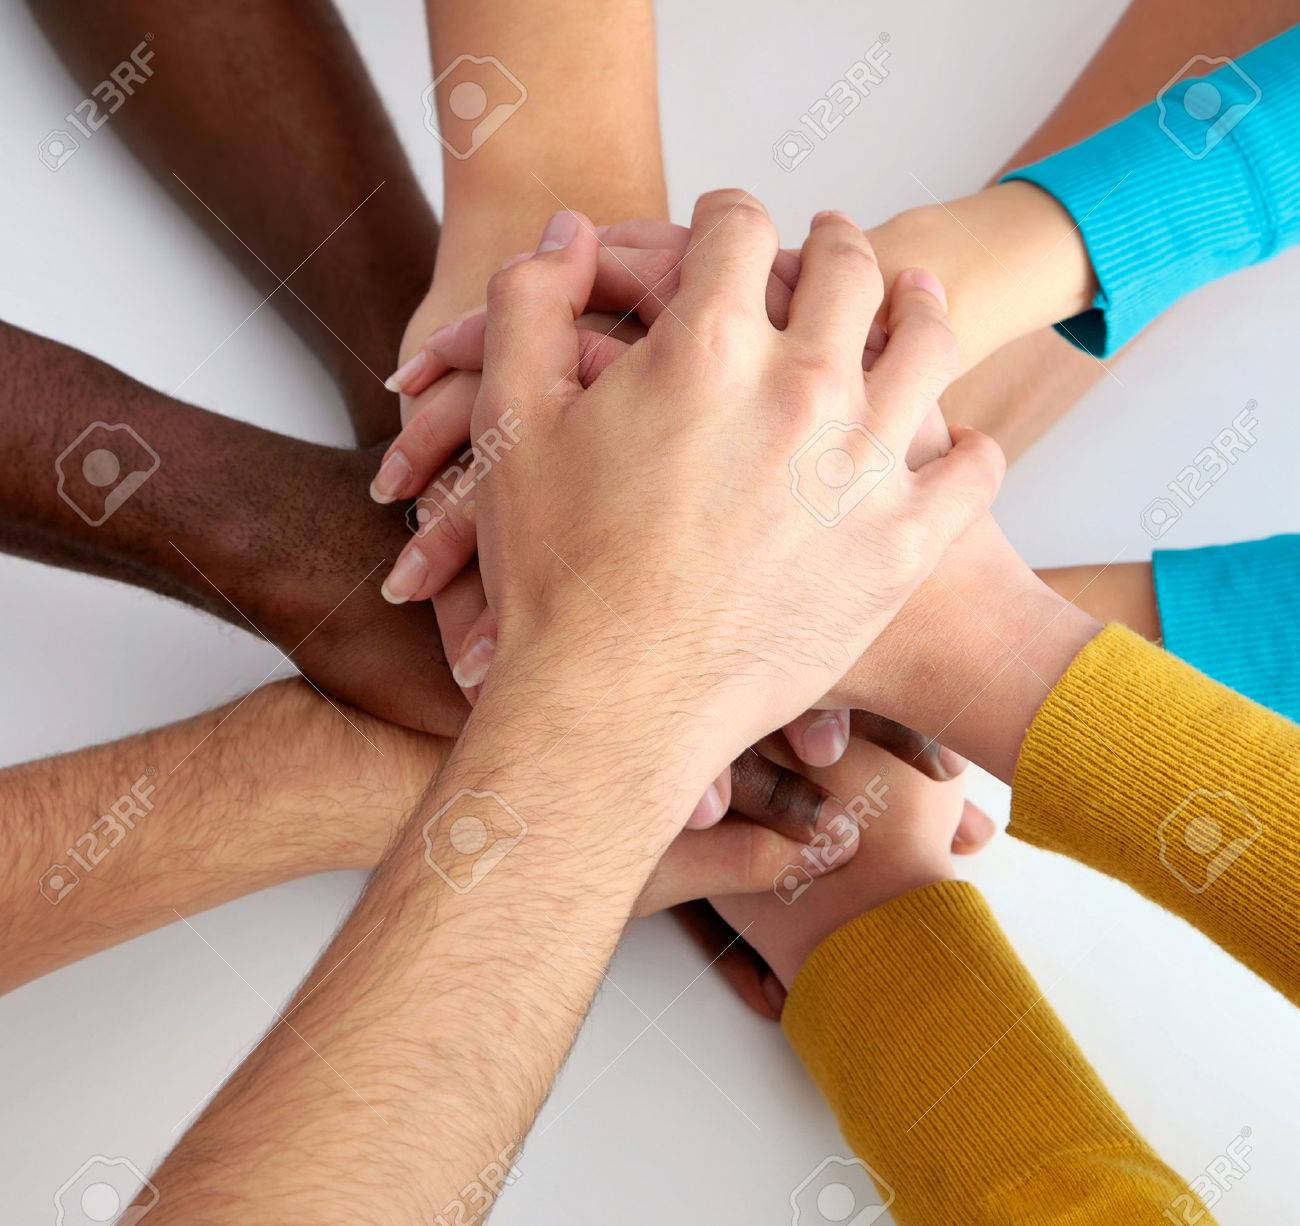 High view of team of friends showing unity with their hands together Stock Photo - 24849321